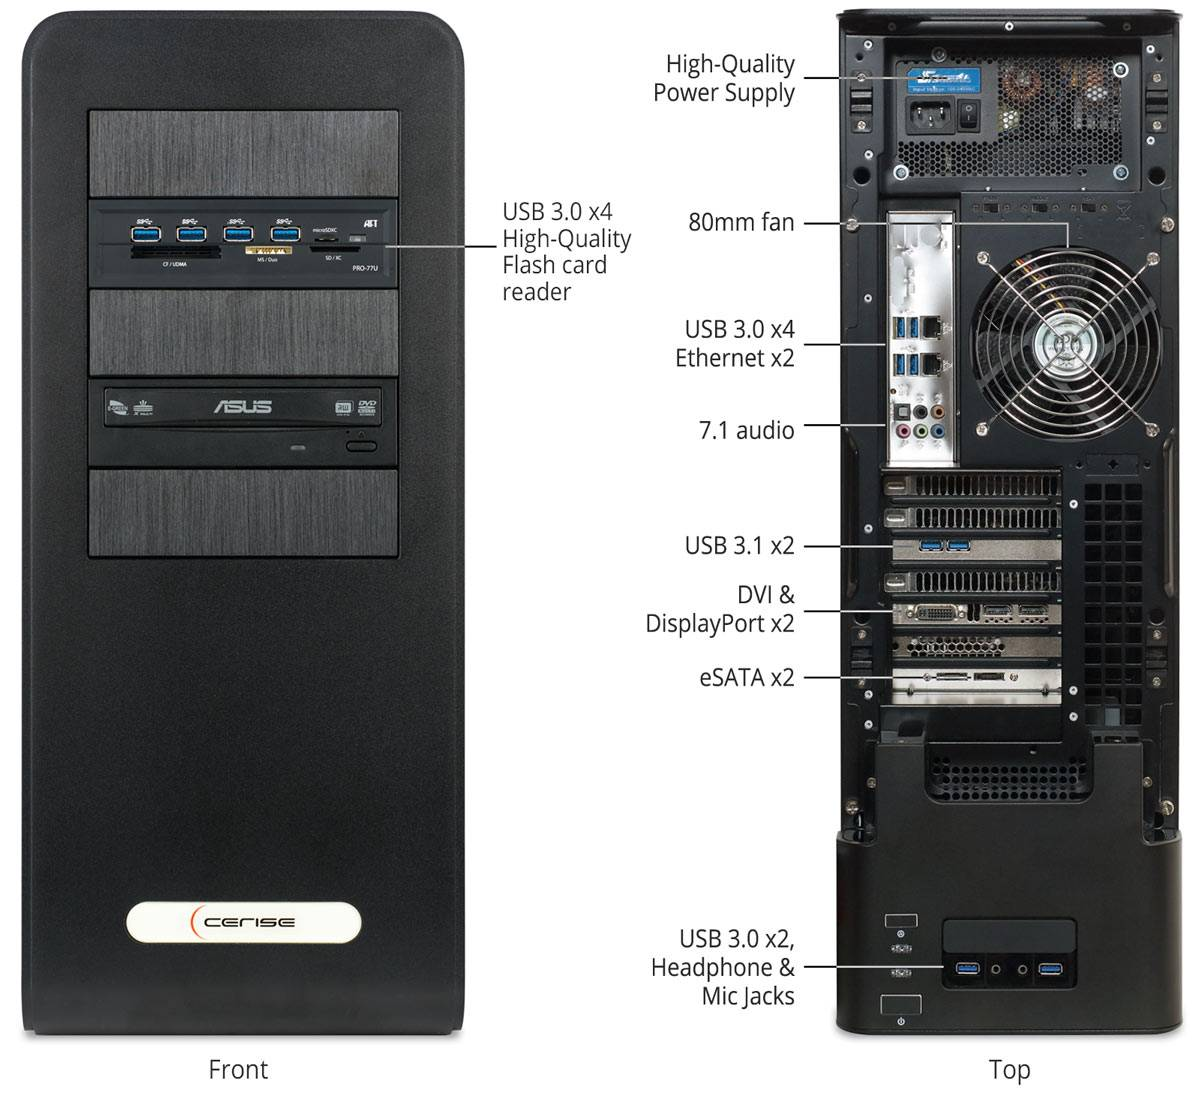 hight resolution of diagram of ports on the front and top of the cerise workstation